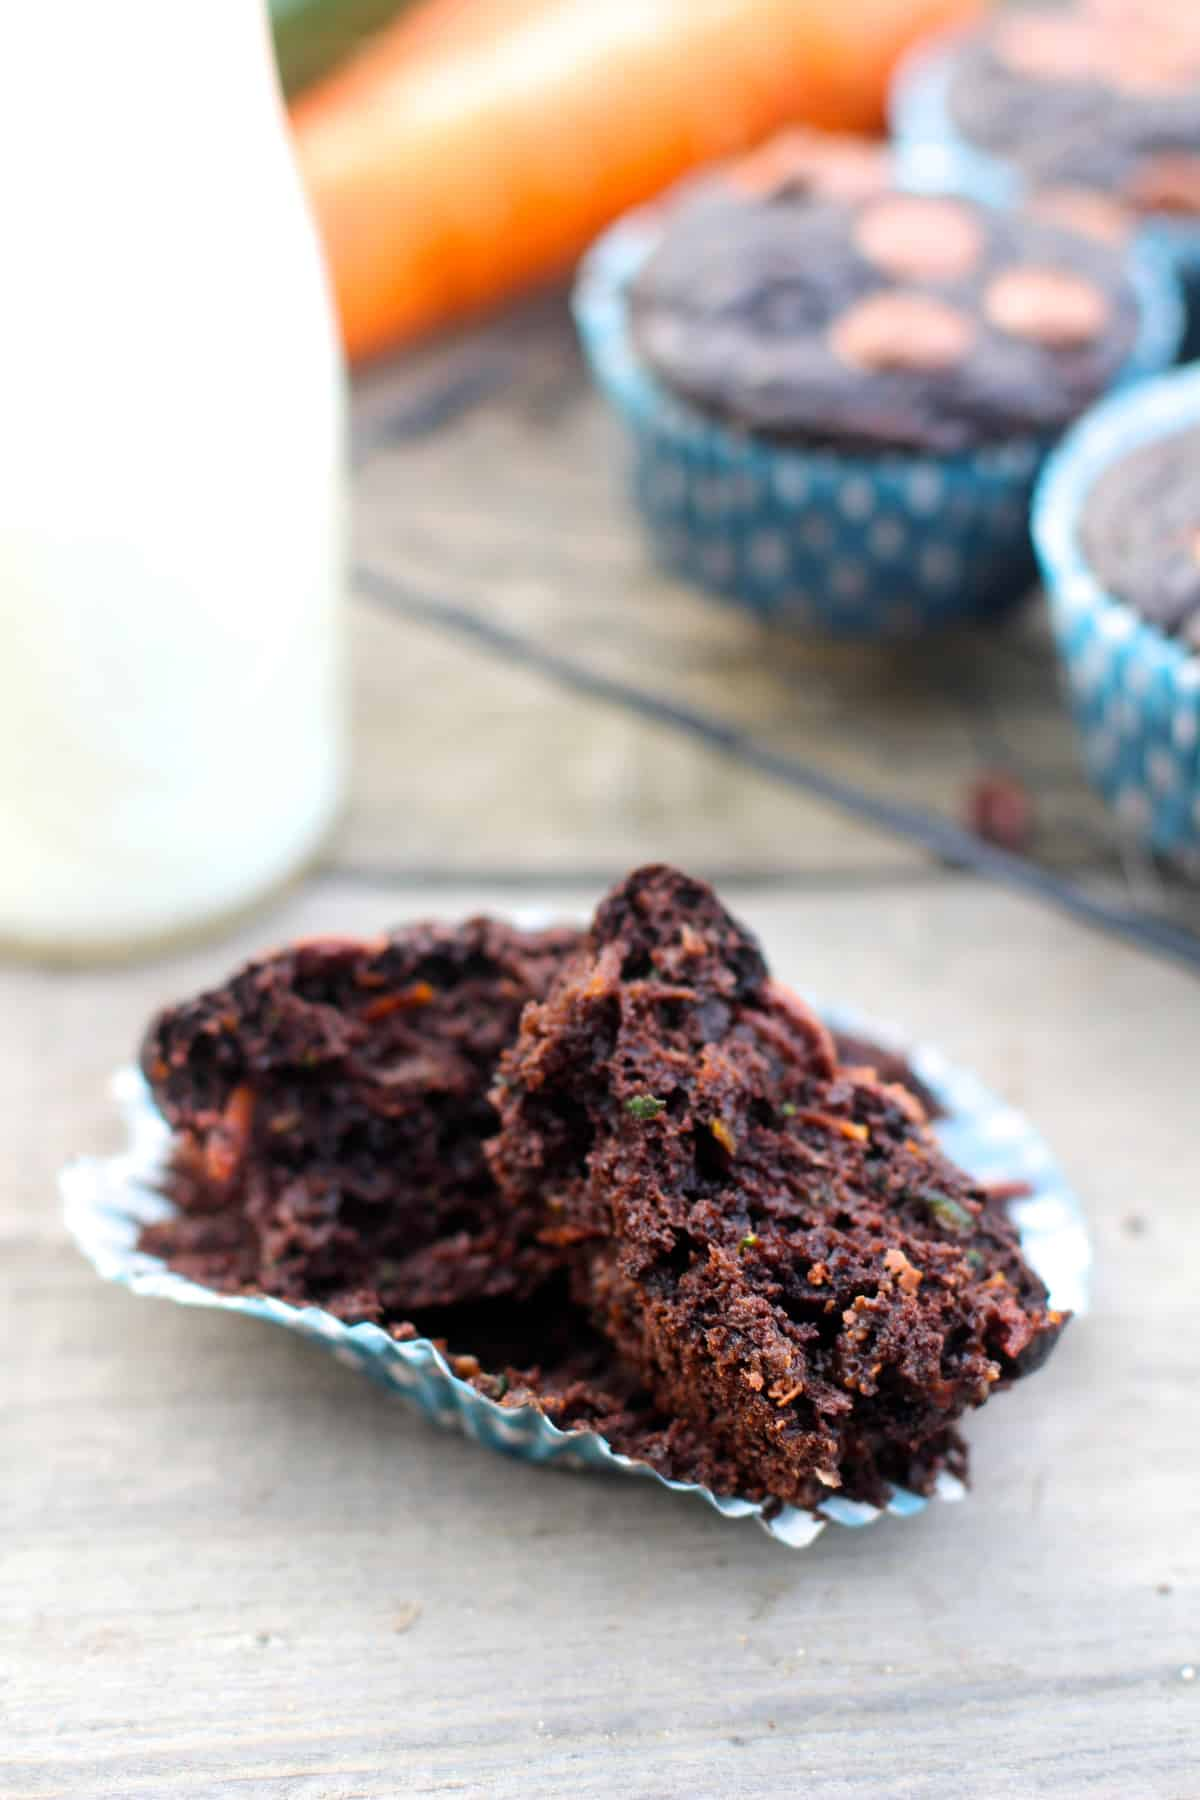 Decadent Chocolate Muffins made with whole wheat flour, flaxseed, carrots and zucchini